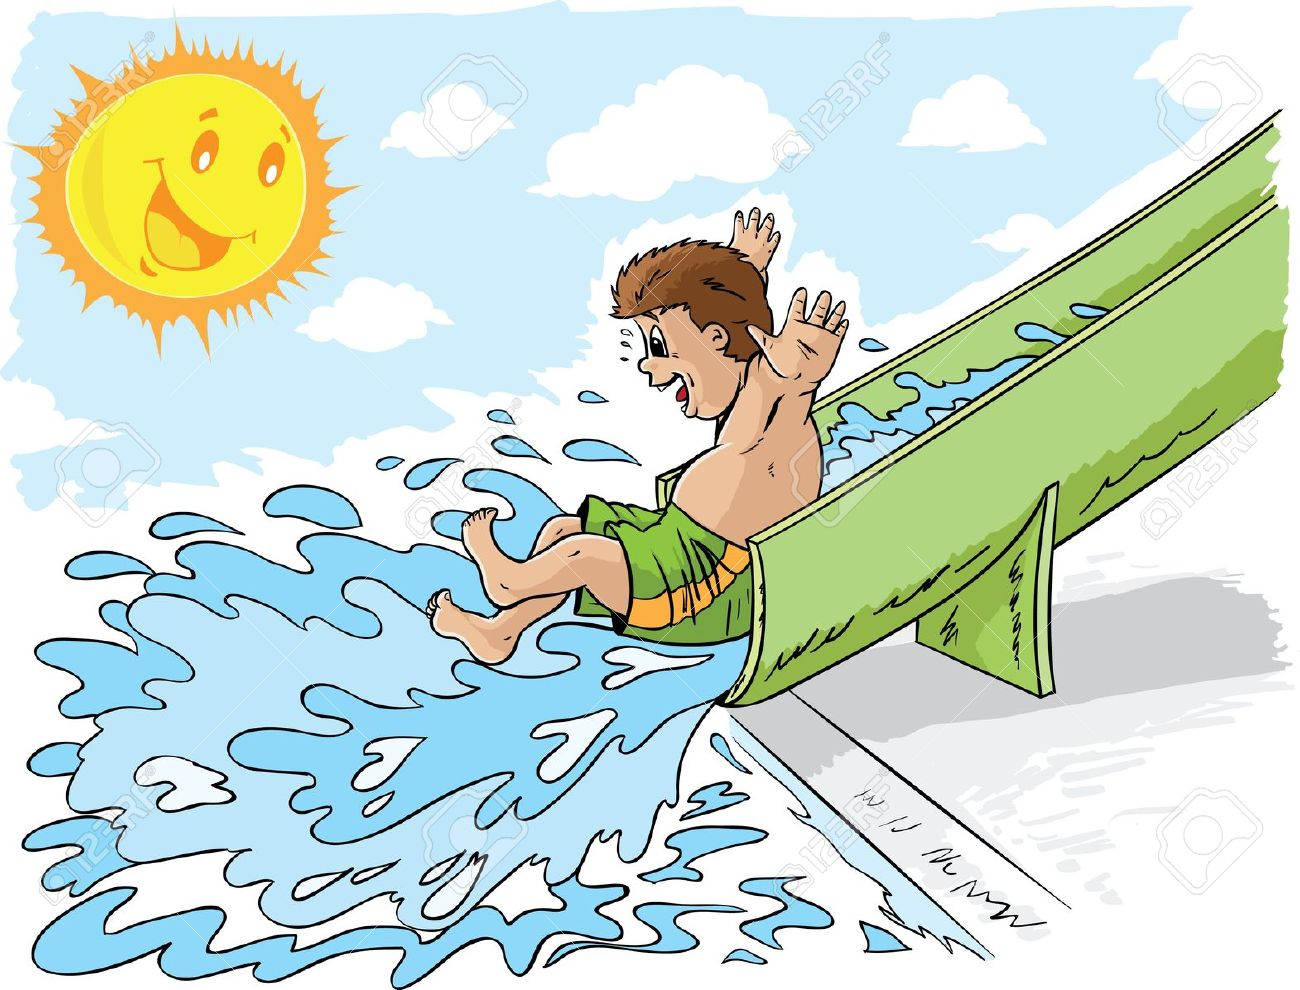 Water slide clipart - Clipground